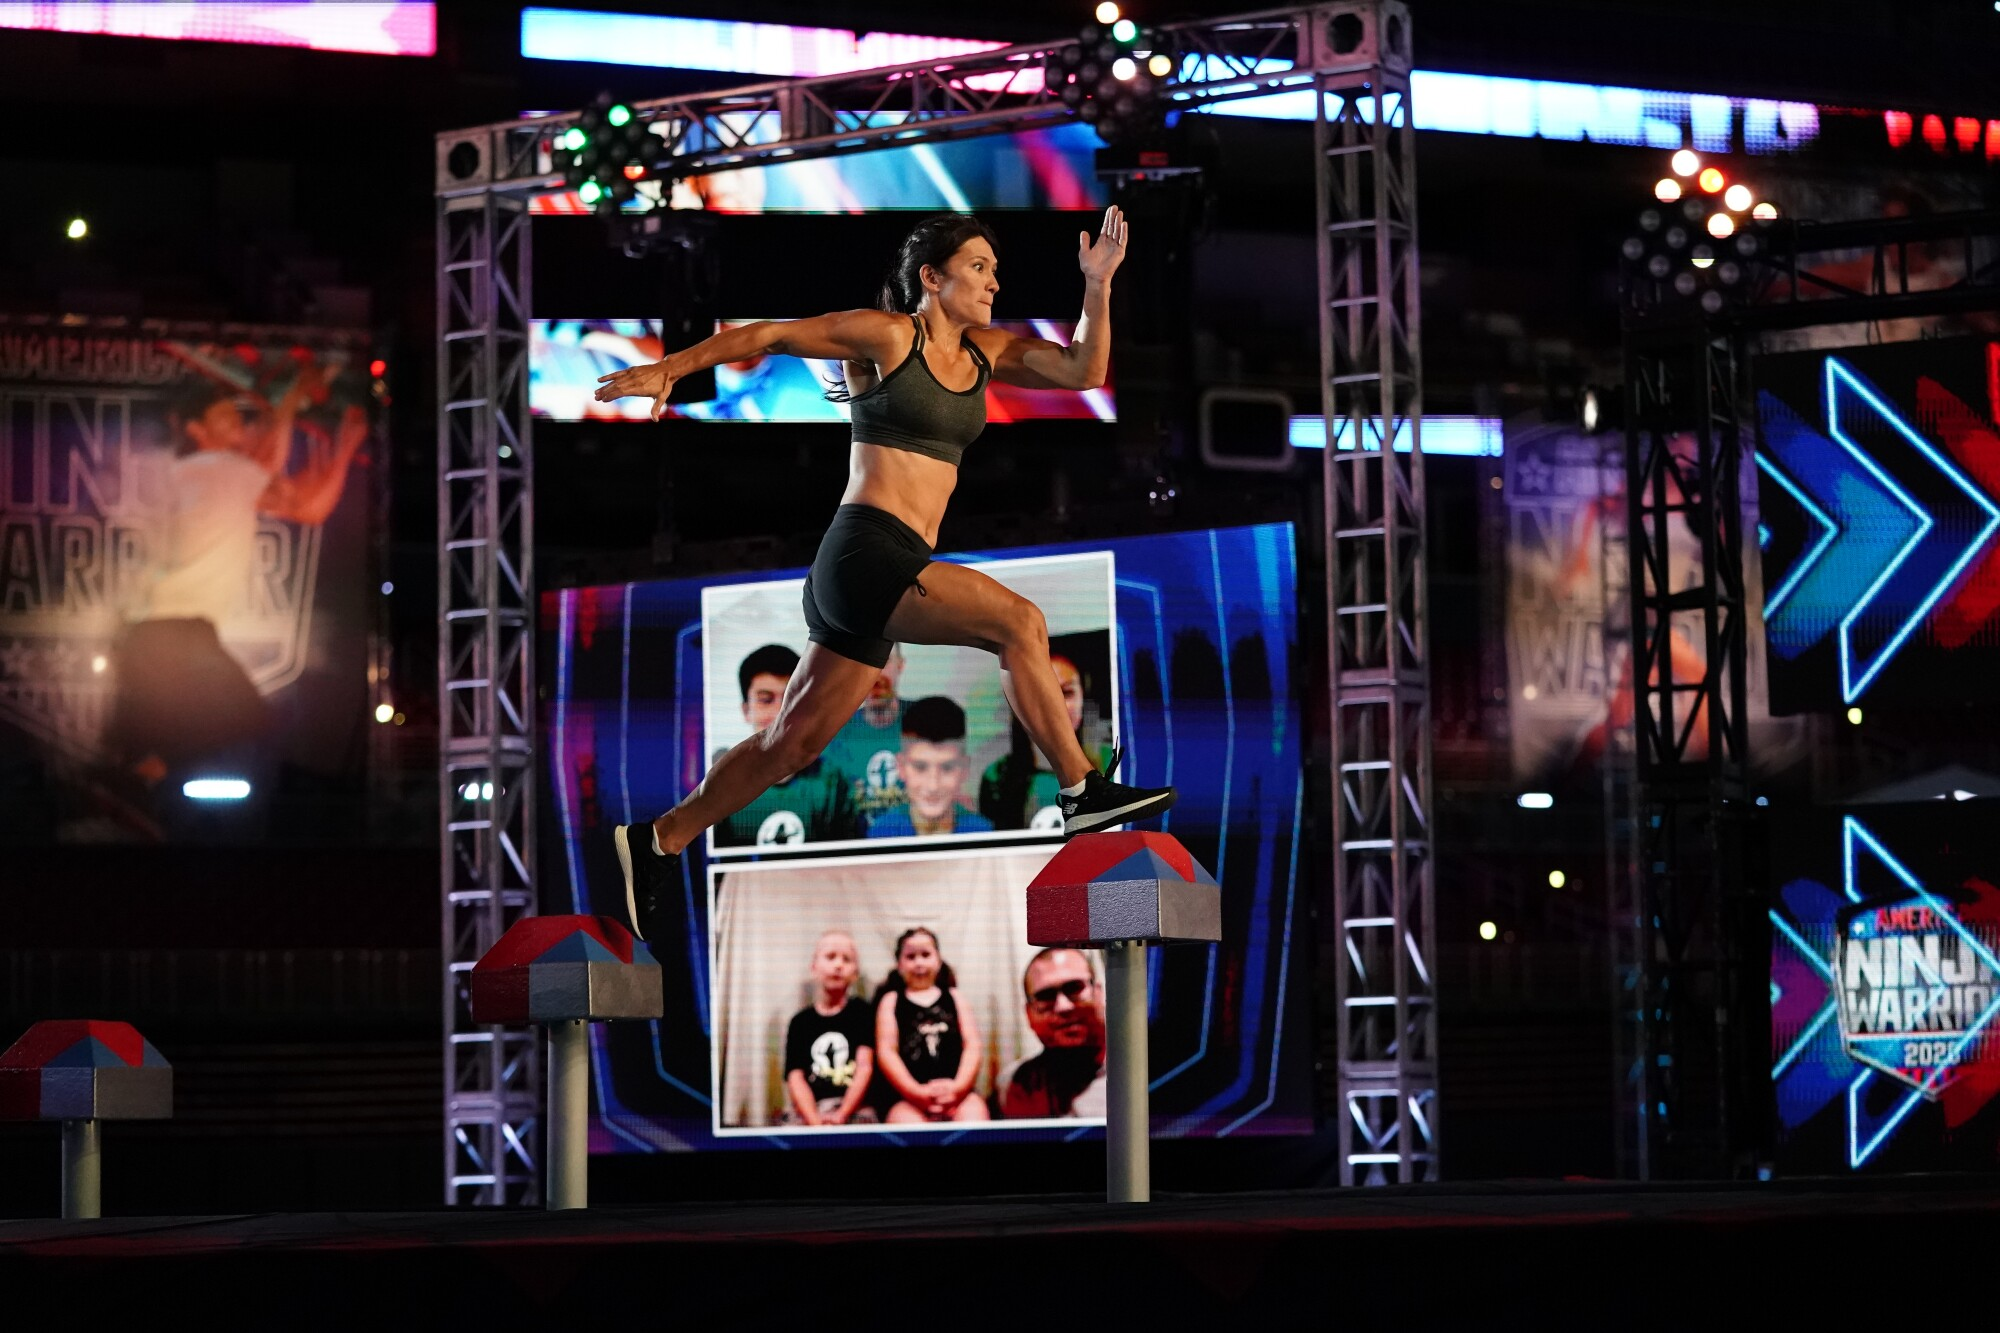 """Sandy Zimmerman competes in the new season of """"American Ninja Warrior,"""" filmed amid the COVID-19 pandemic."""